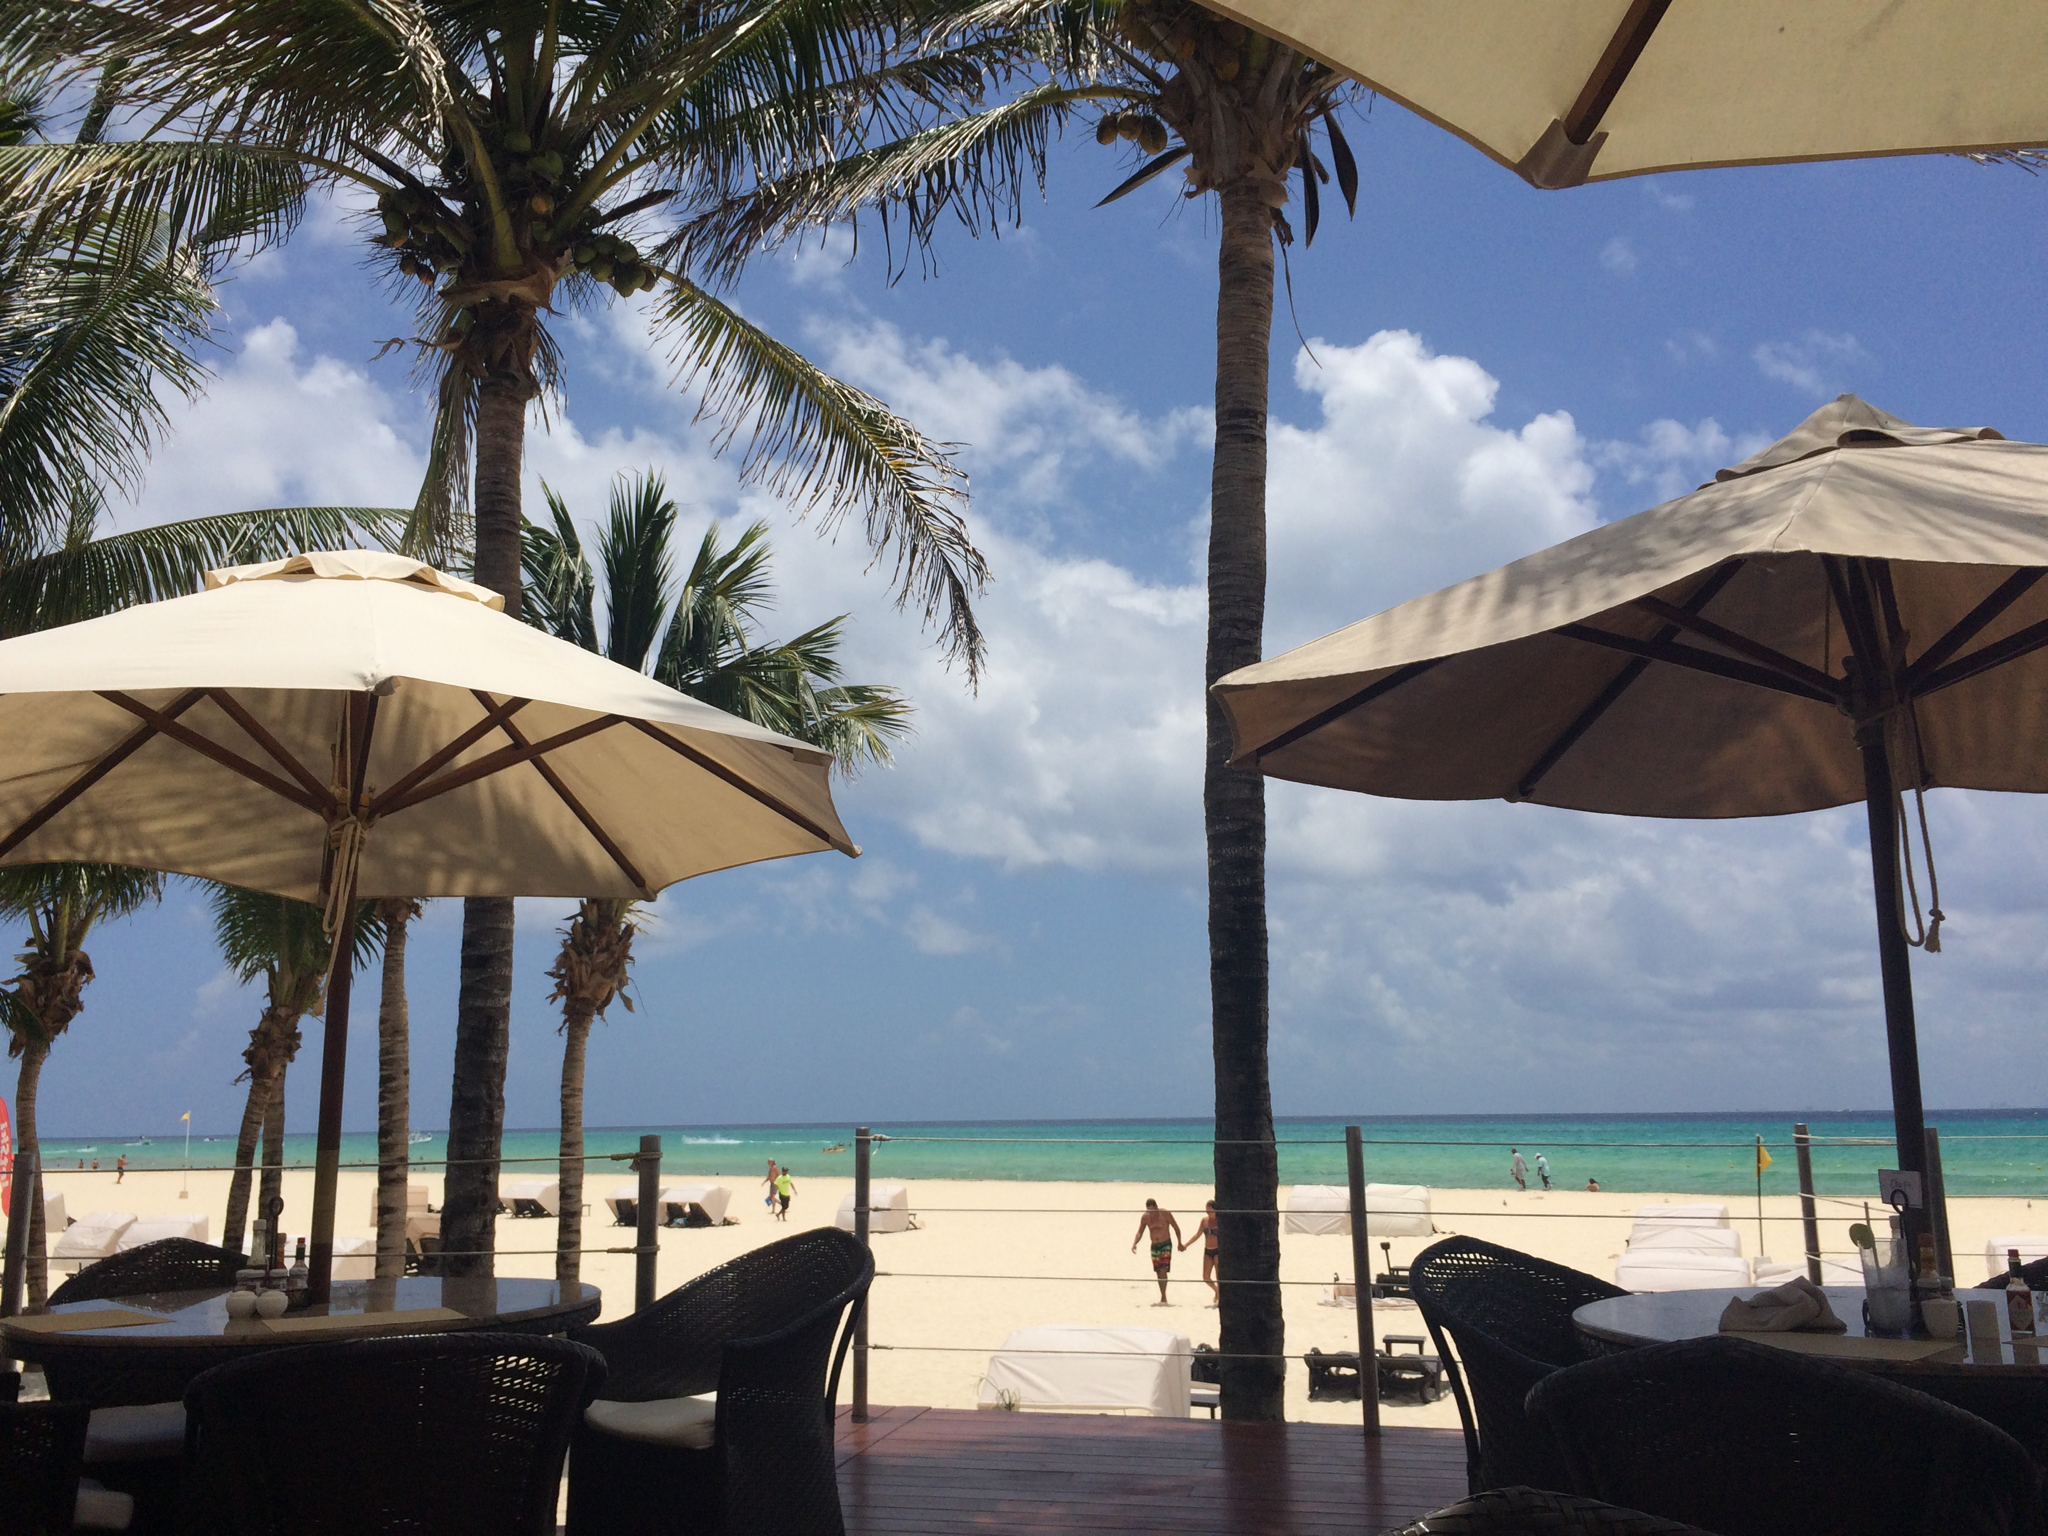 Dec 06, - Rent from people in Playa del Carmen, Mexico from $20/night. Find unique places to stay with local hosts in countries. Belong anywhere with Airbnb.